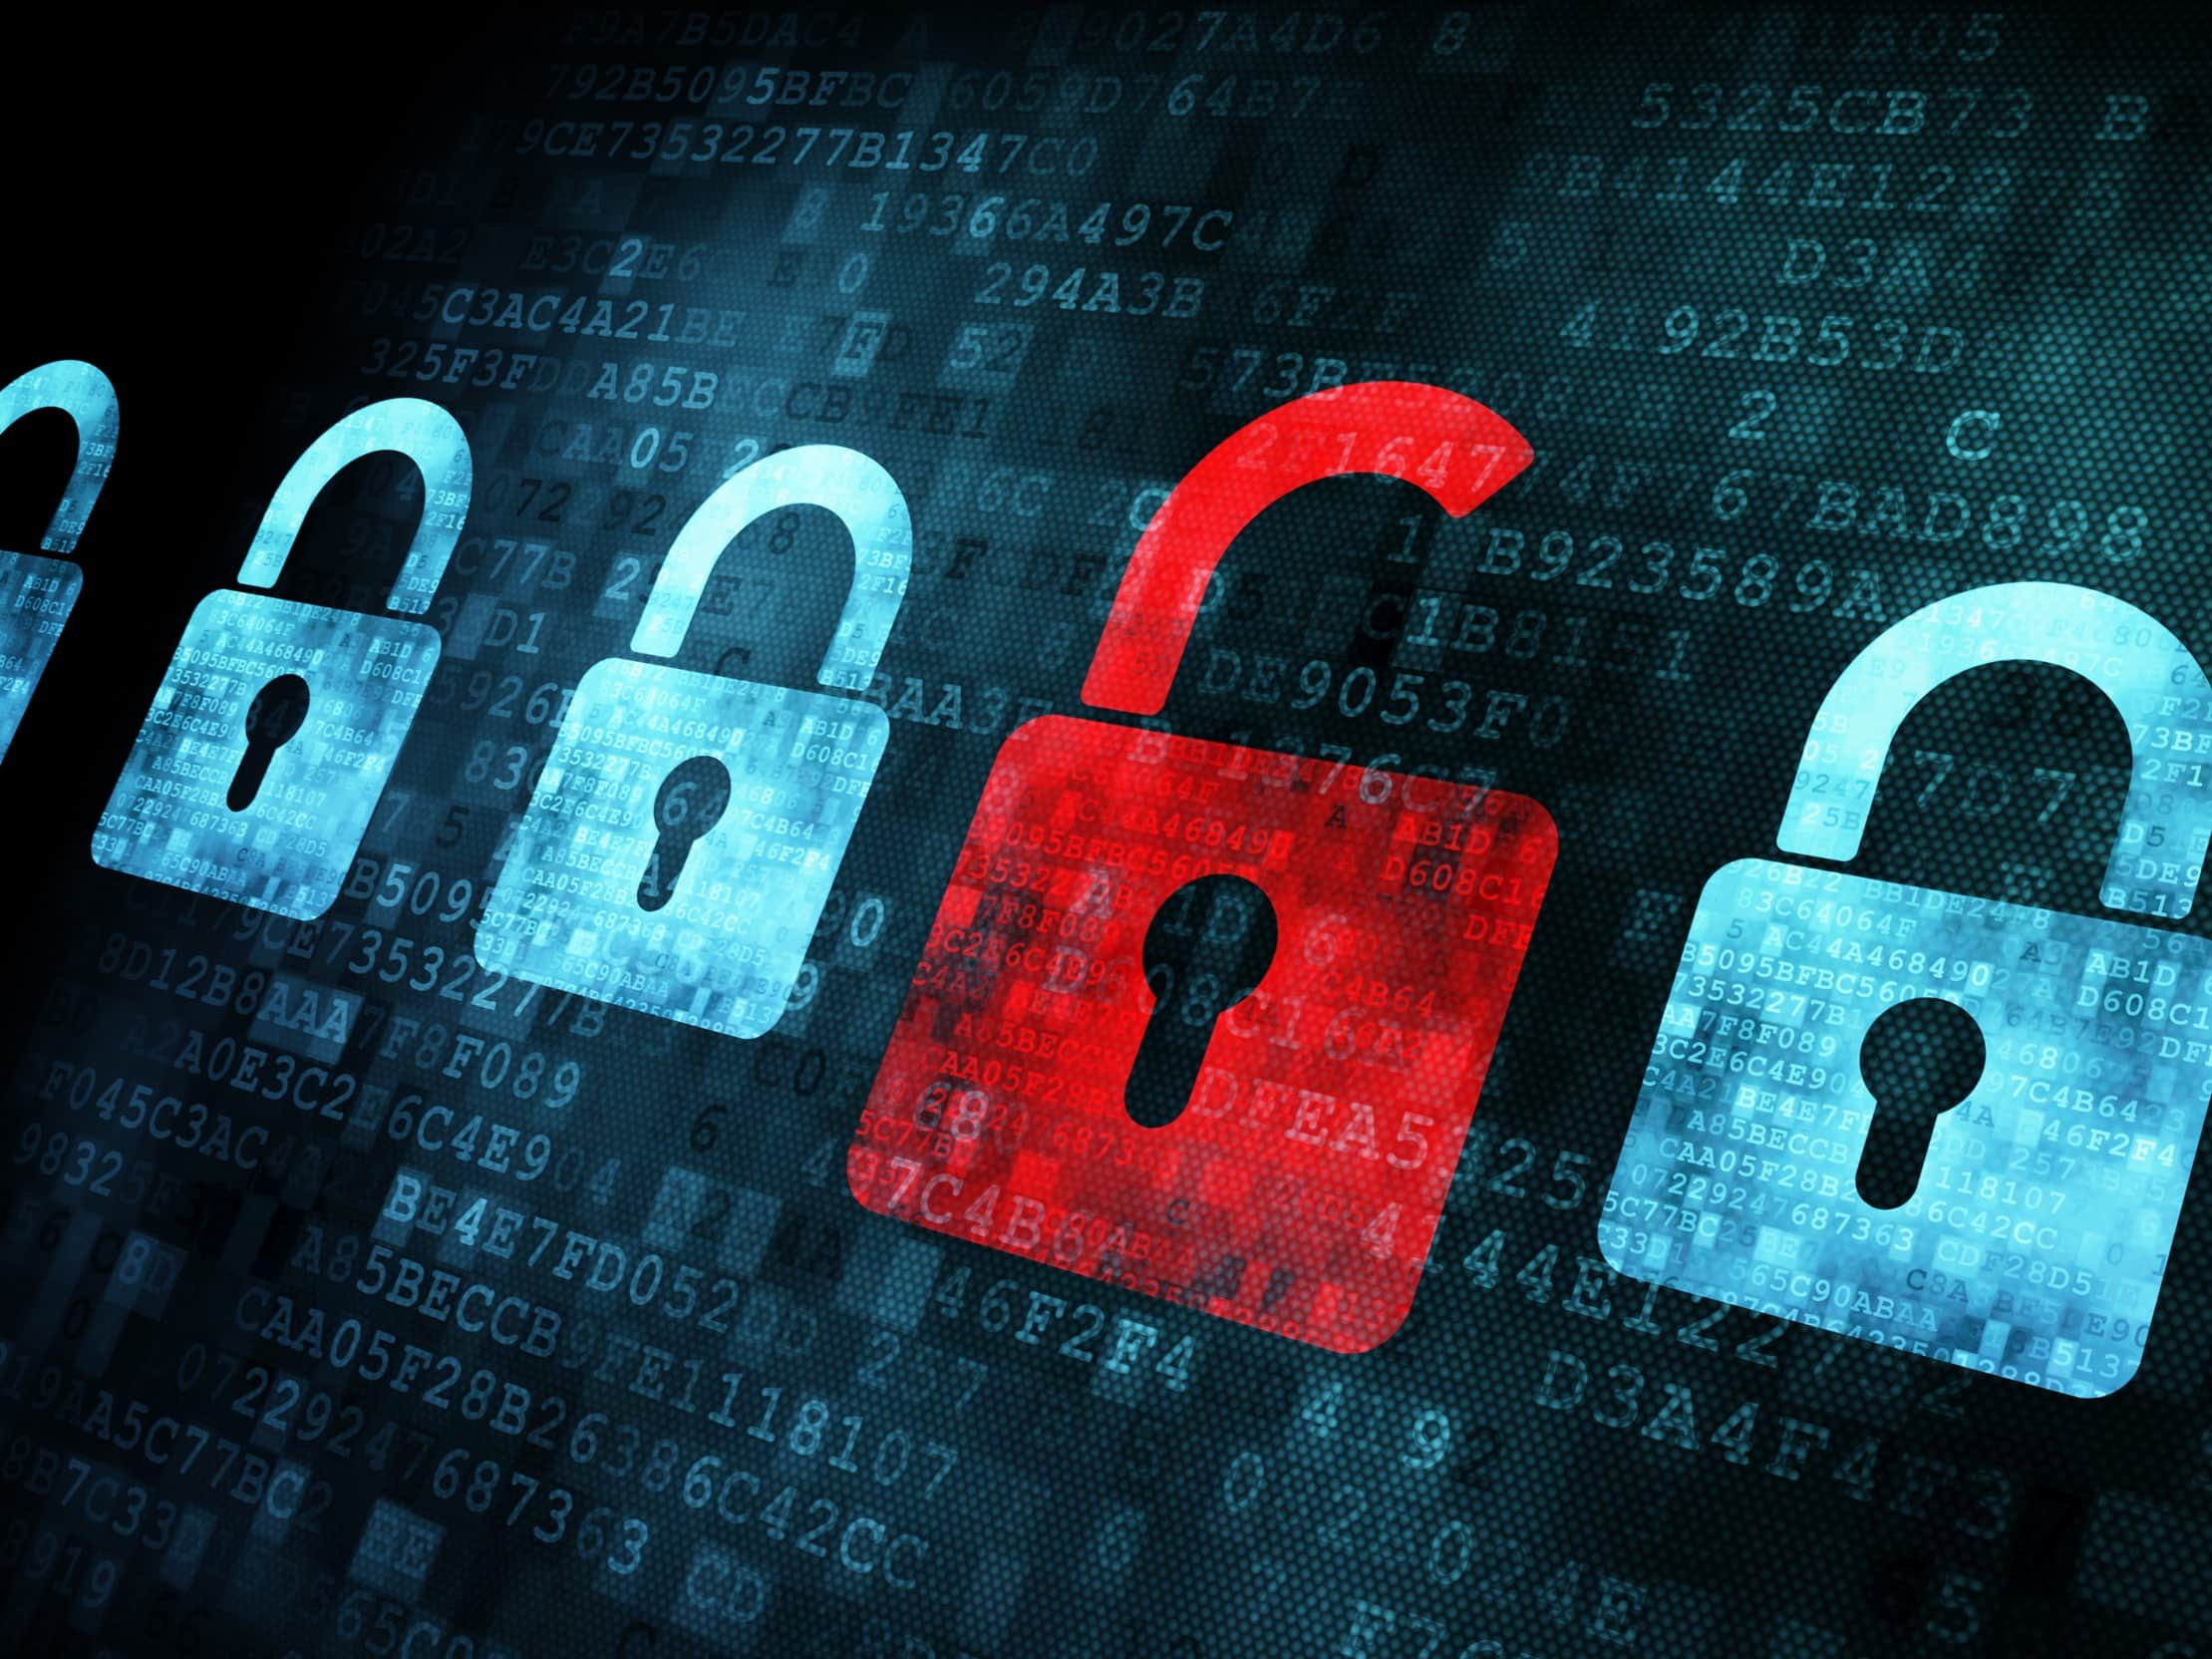 content/en-in/images/repository/isc/types-of-cybercrimes-tips.jpg